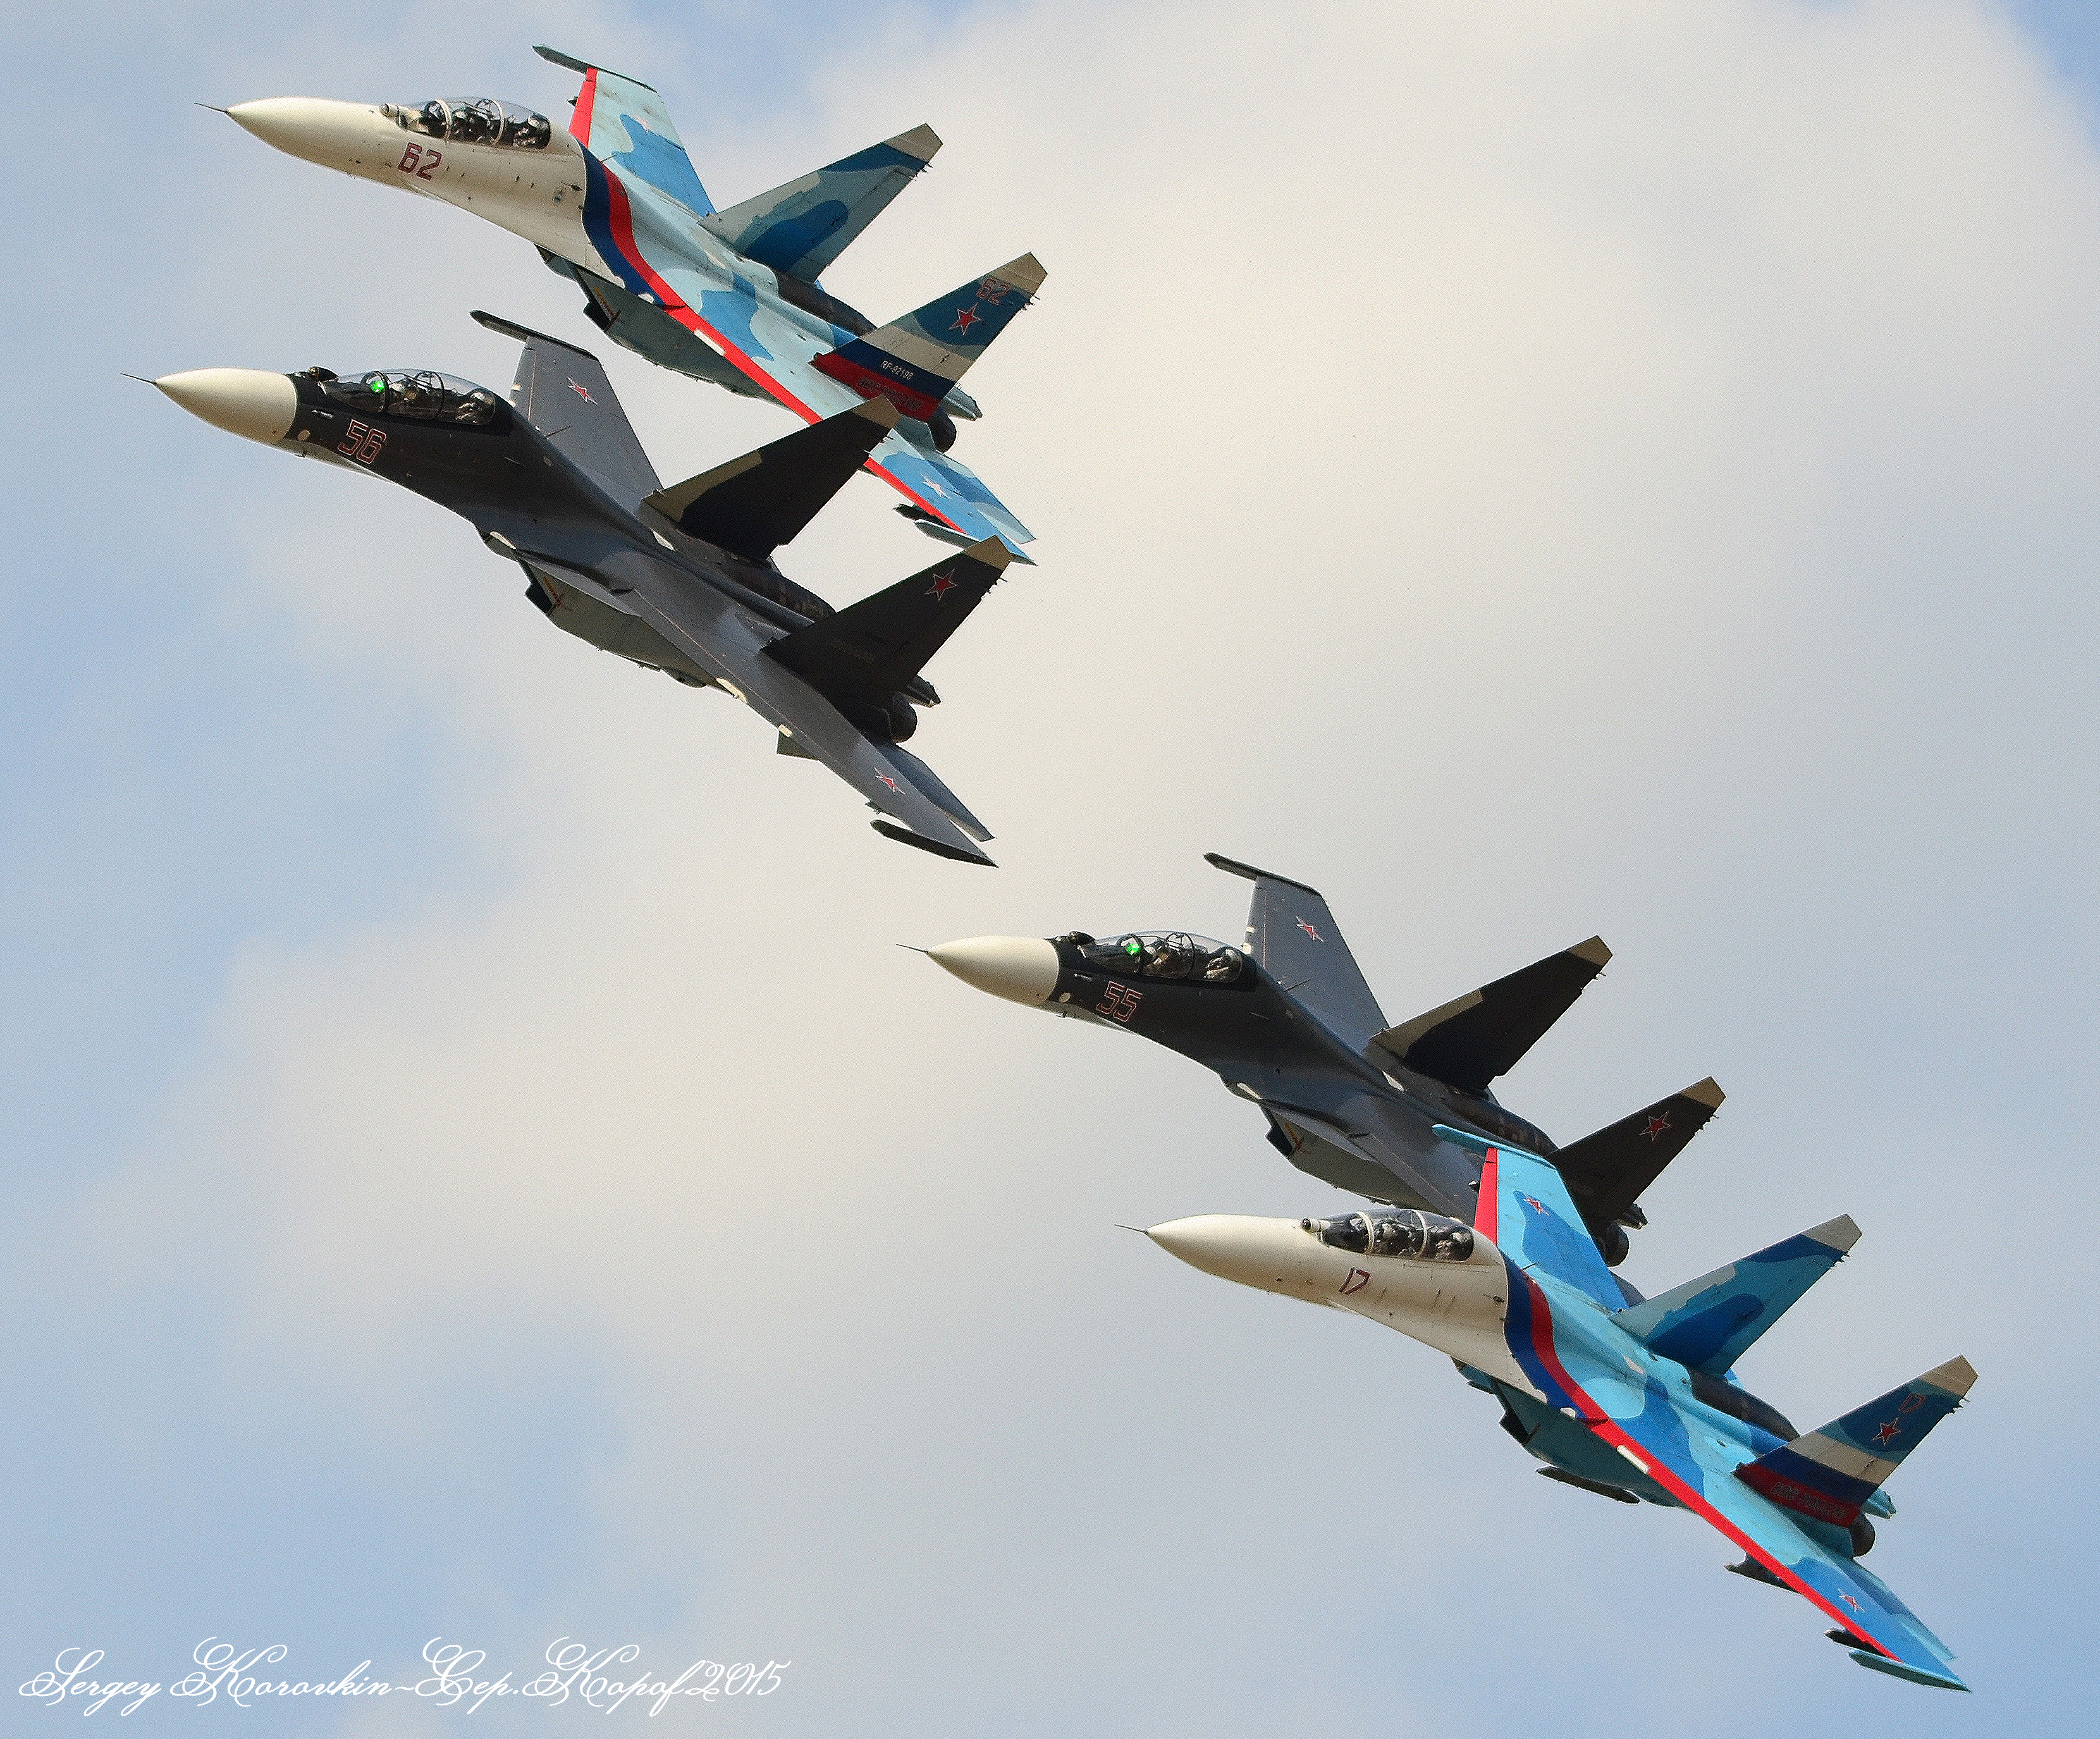 MAKS-2015 Air Show: Photos and Discussion - Page 3 0_17bdb9_8420f149_orig